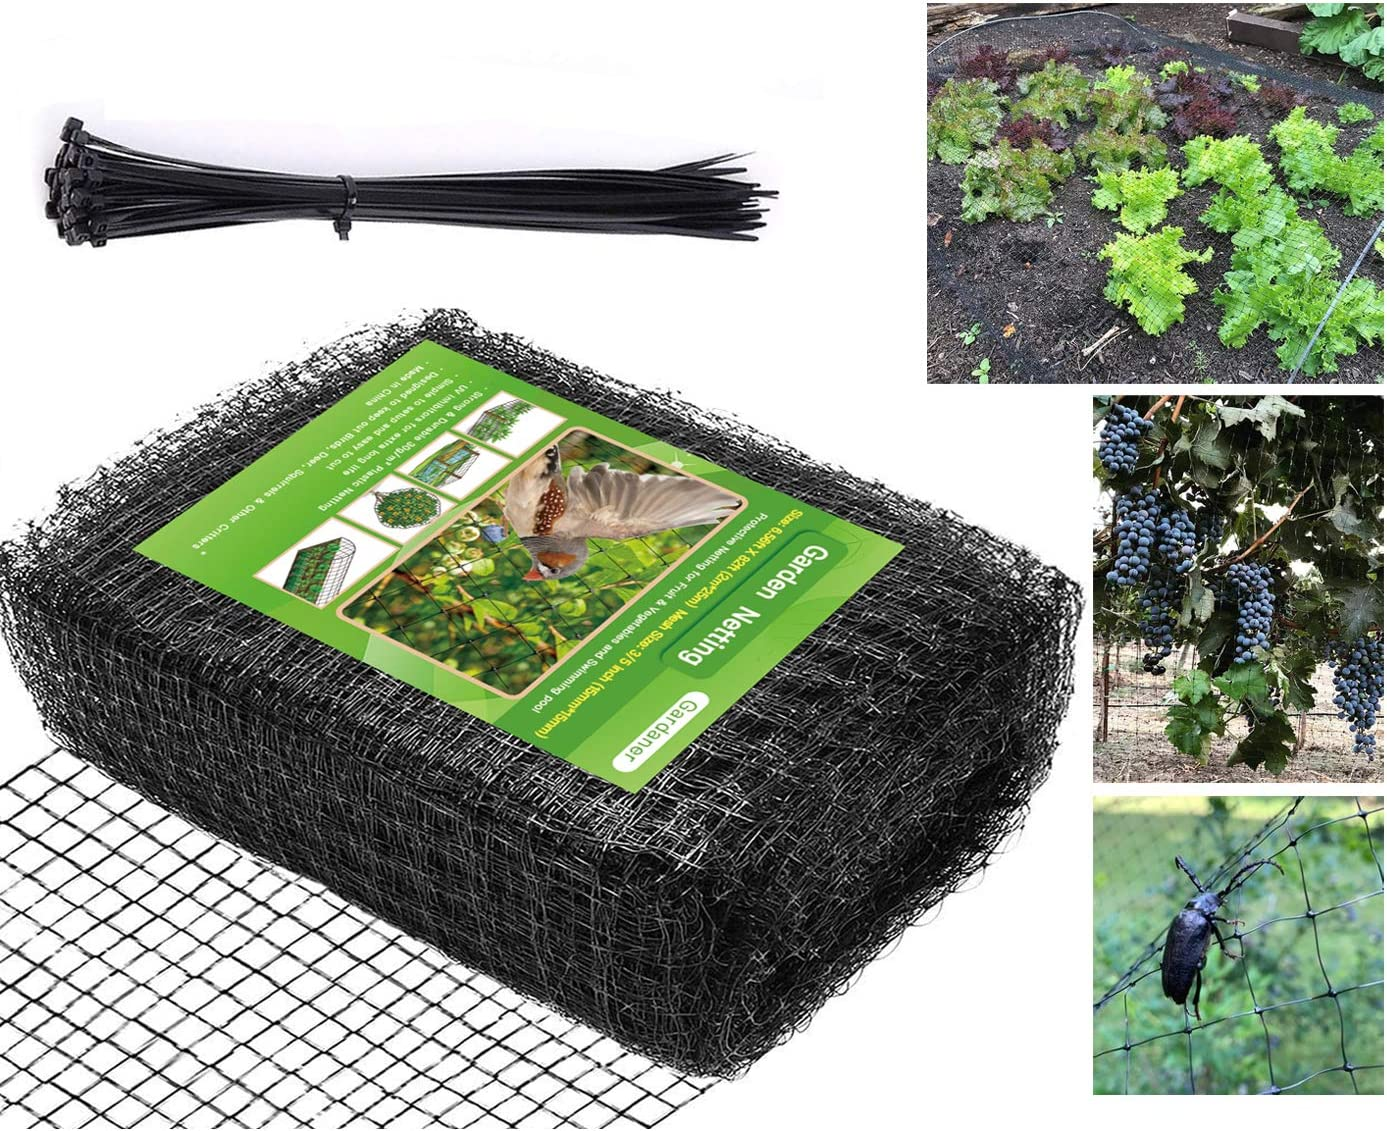 Heavy Duty Garden Bird Netting- Doesn't Tangle and Reusable, PP Material Anti-Bird Birds, Deer and Other Critters (6.56ft x 82ft),Bonus 50 PCS Cable Ties